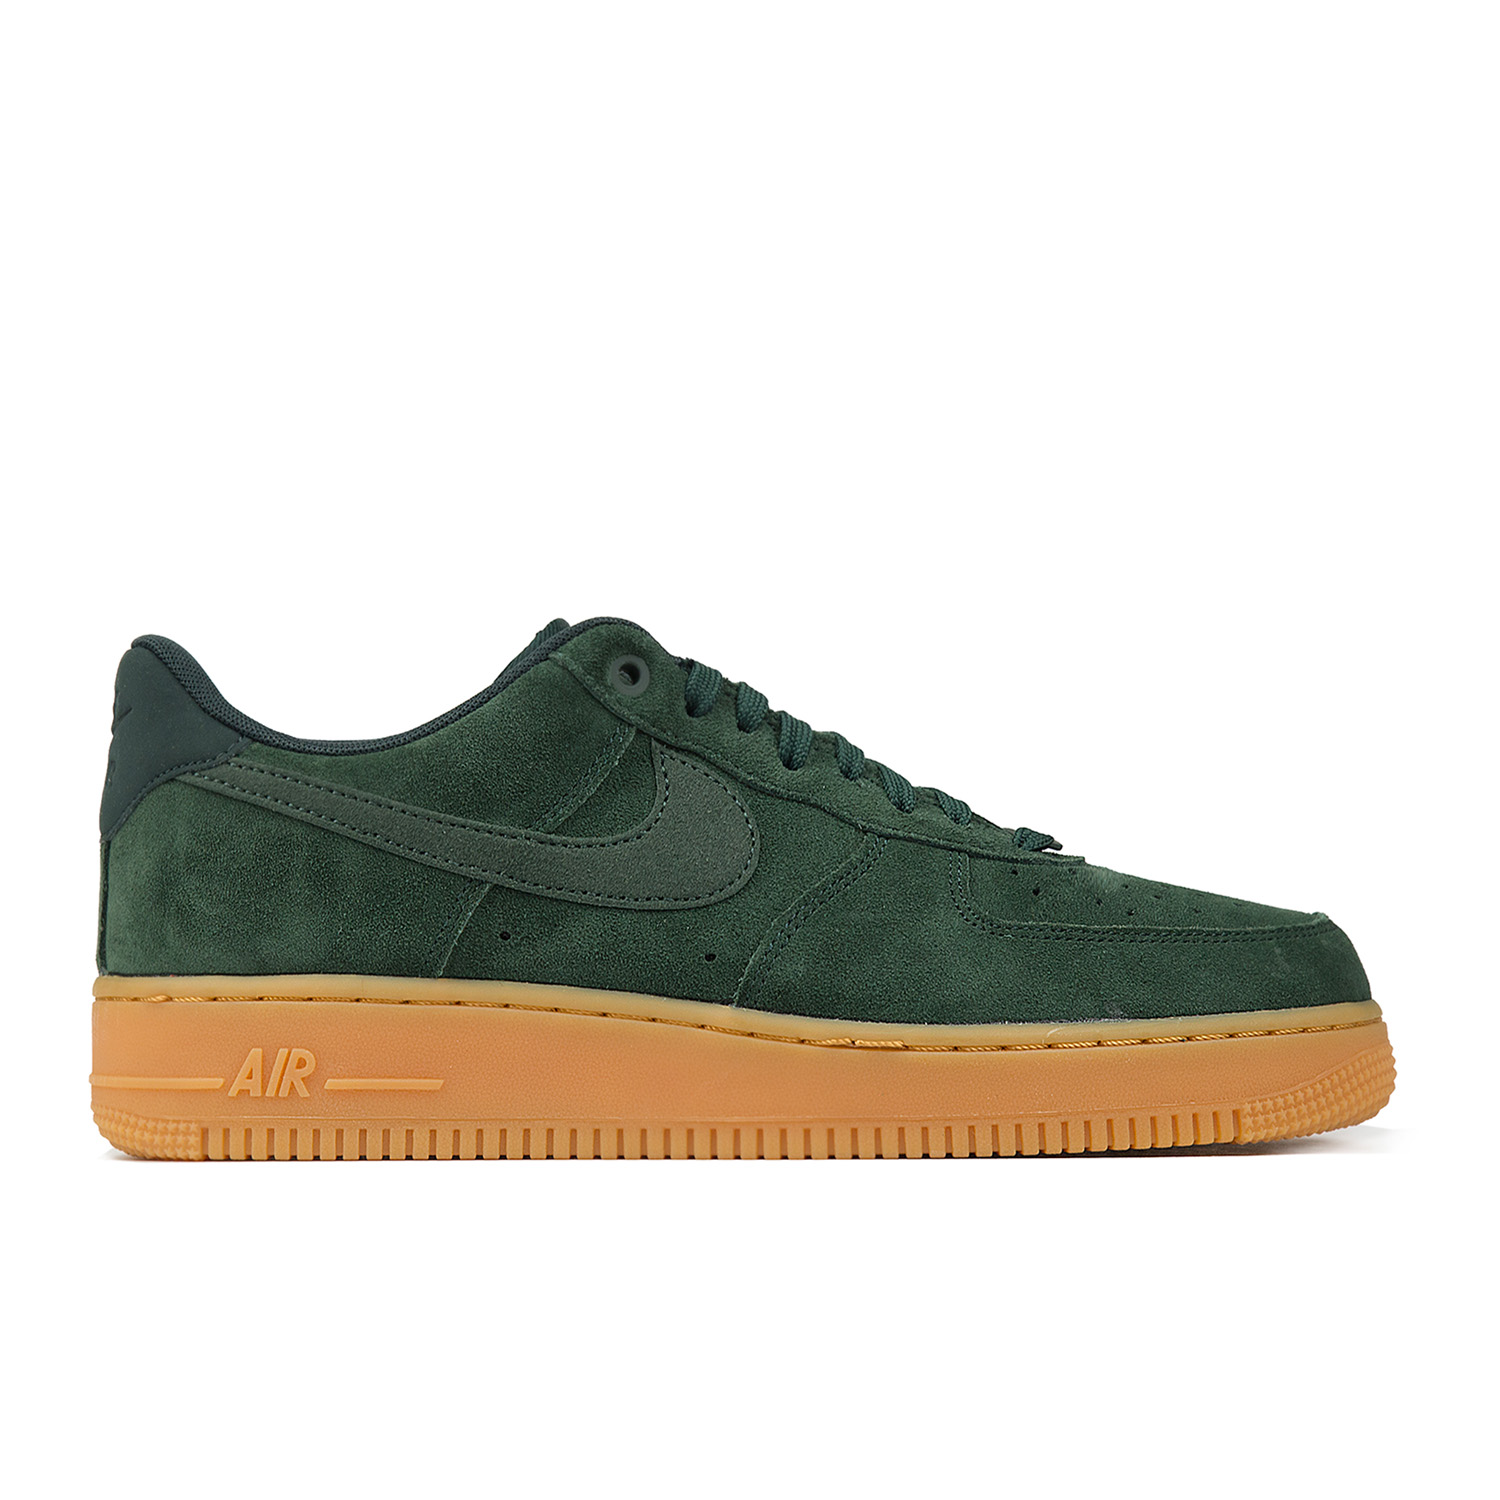 AIR FORCE 1 07 LV8 SUEDE AA1117 300